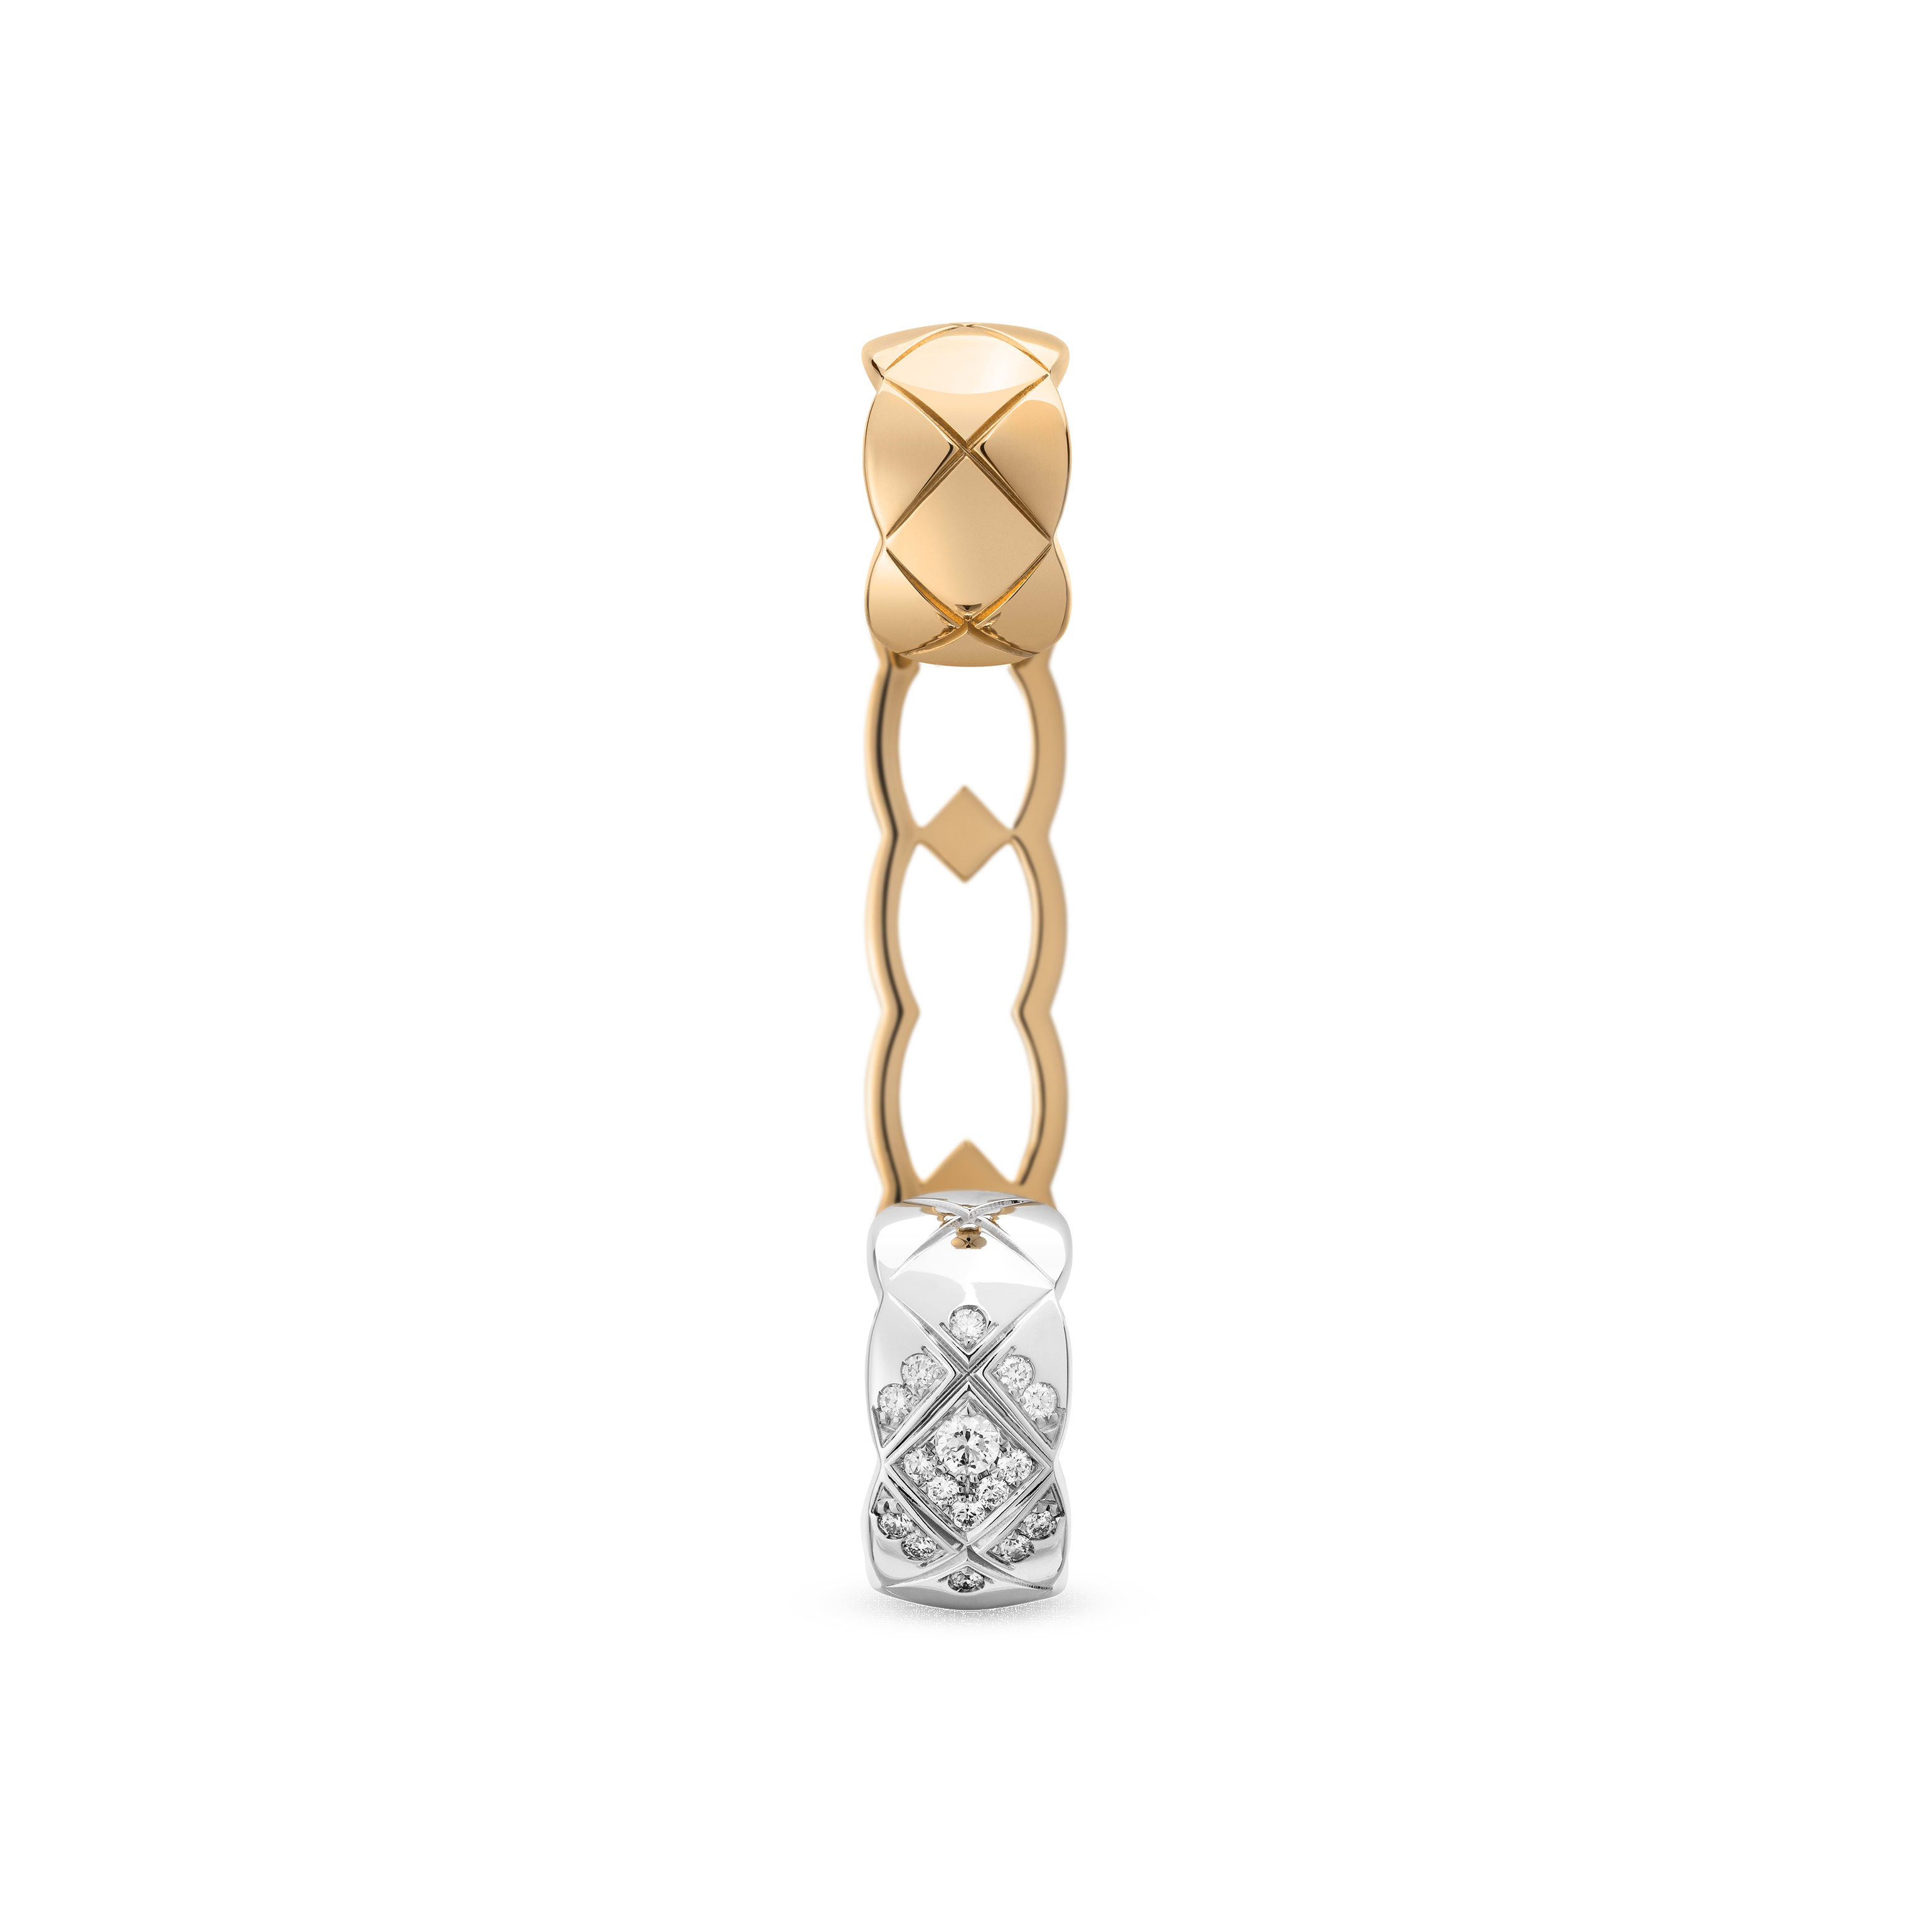 Coco Crush ear cuff - Quilted motif, 18K white gold and BEIGE GOLD, diamonds - CHANEL - Default view - see standard sized version